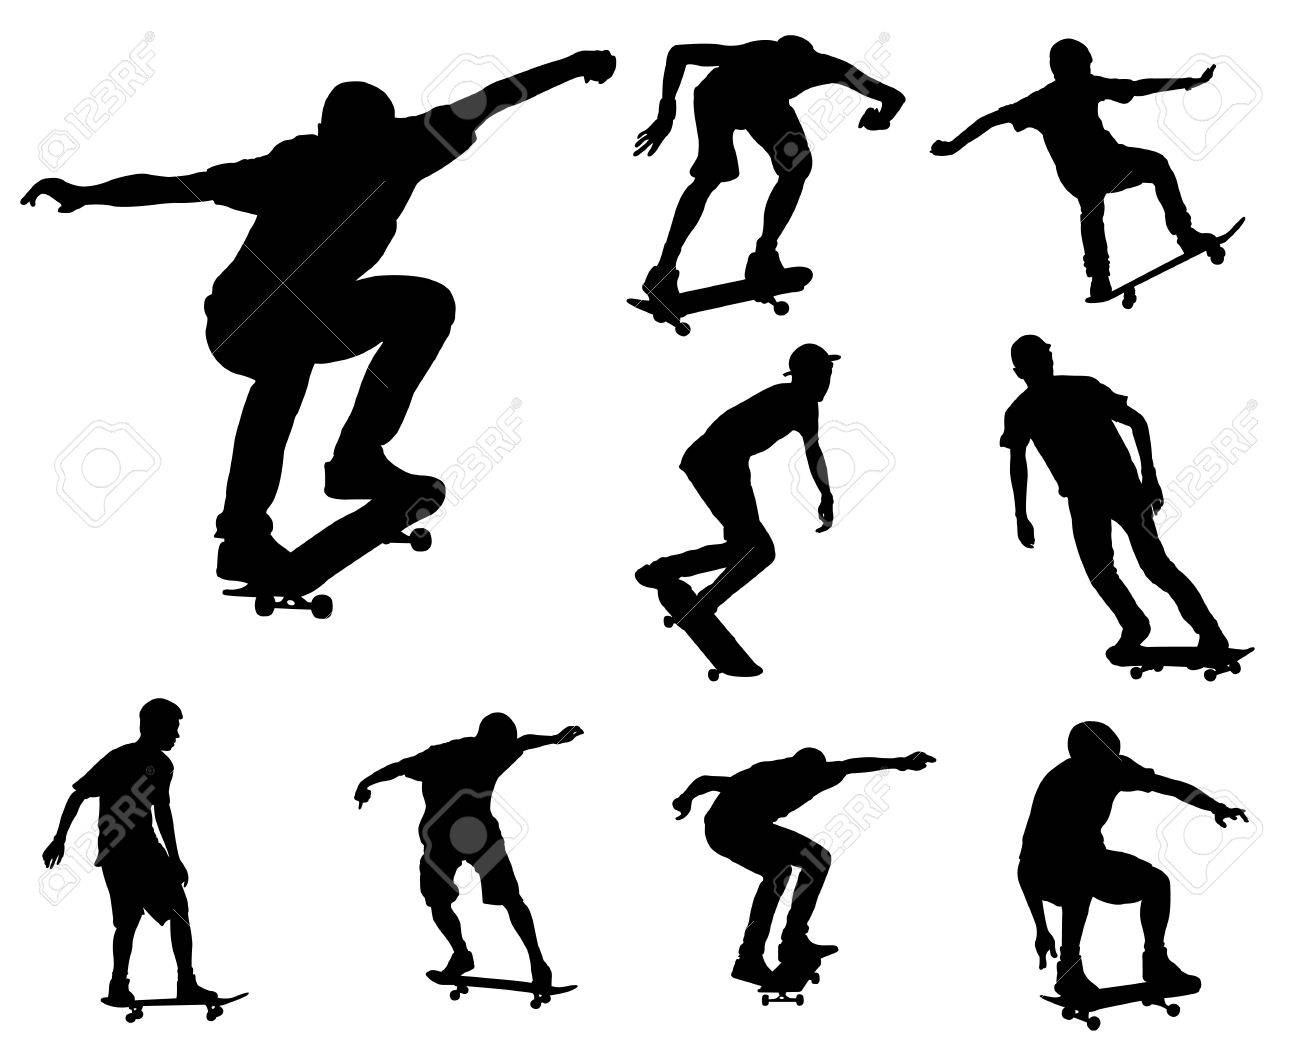 skateboarders silhouettes collection - 21967734